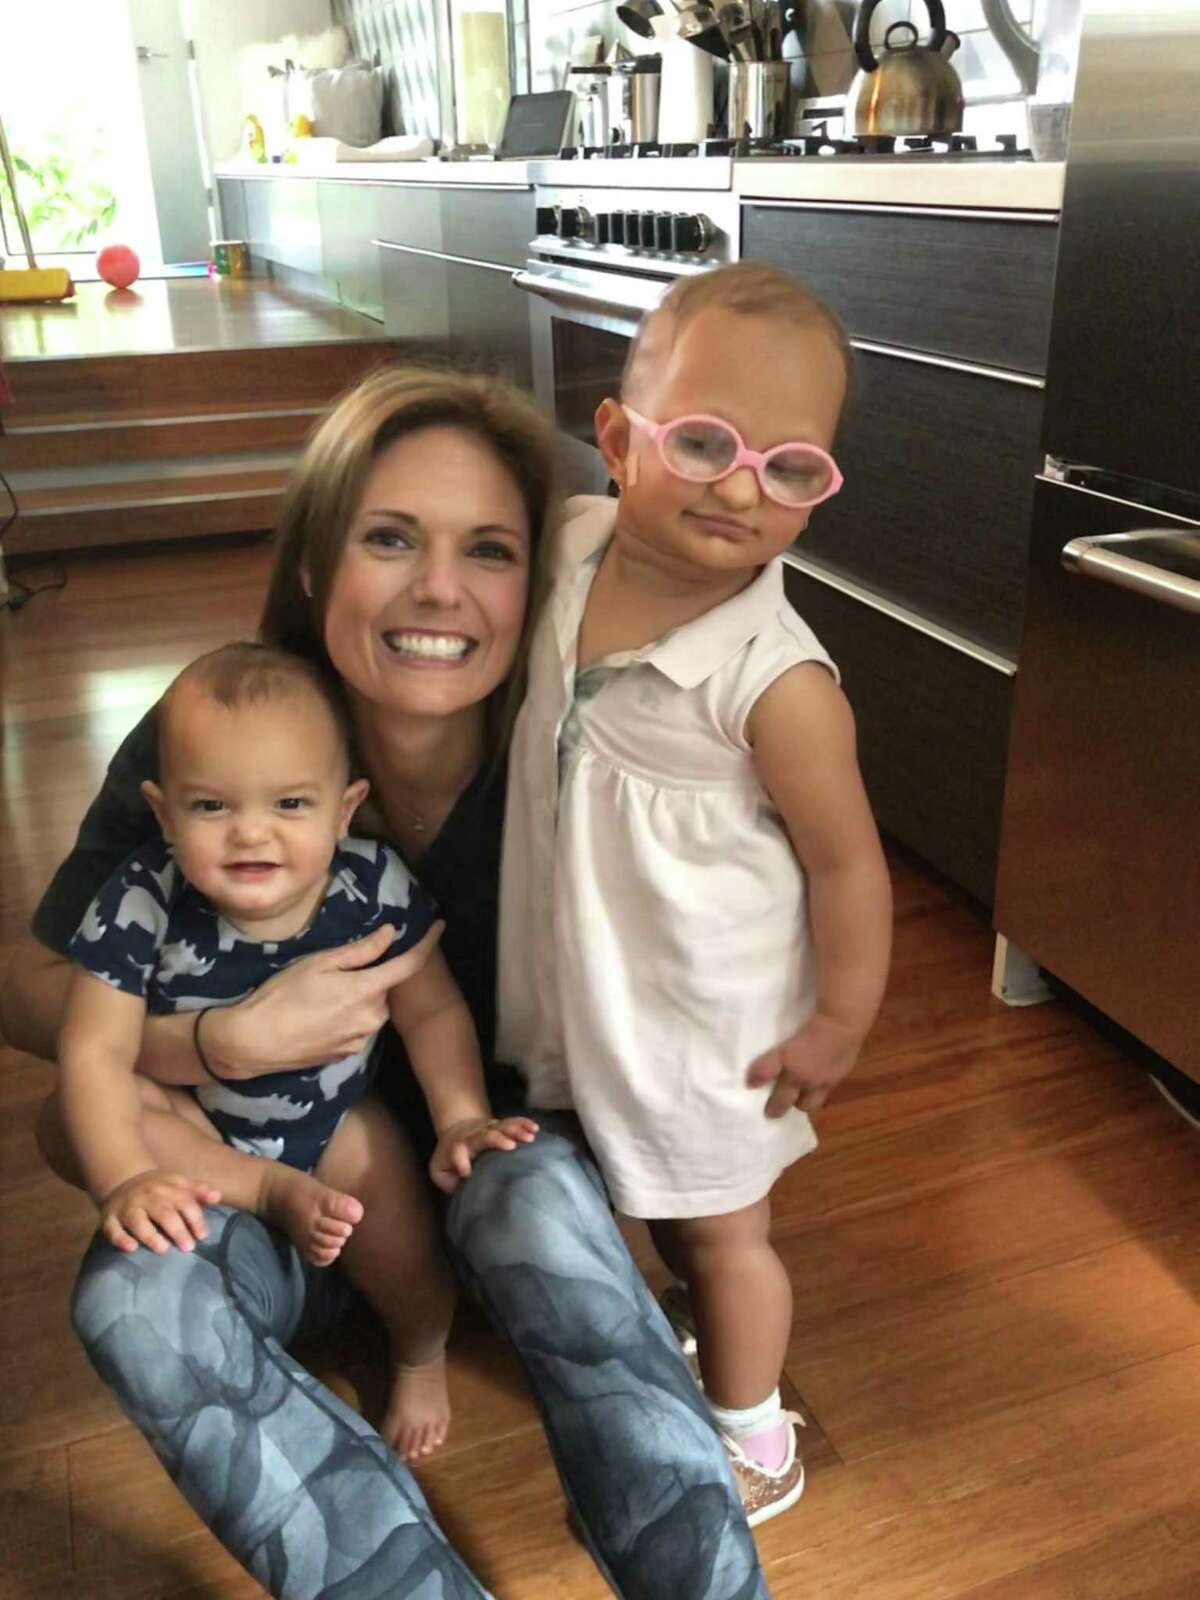 Marci Sharif is mom to an 11-month-old son and a 2-year-old daughter.